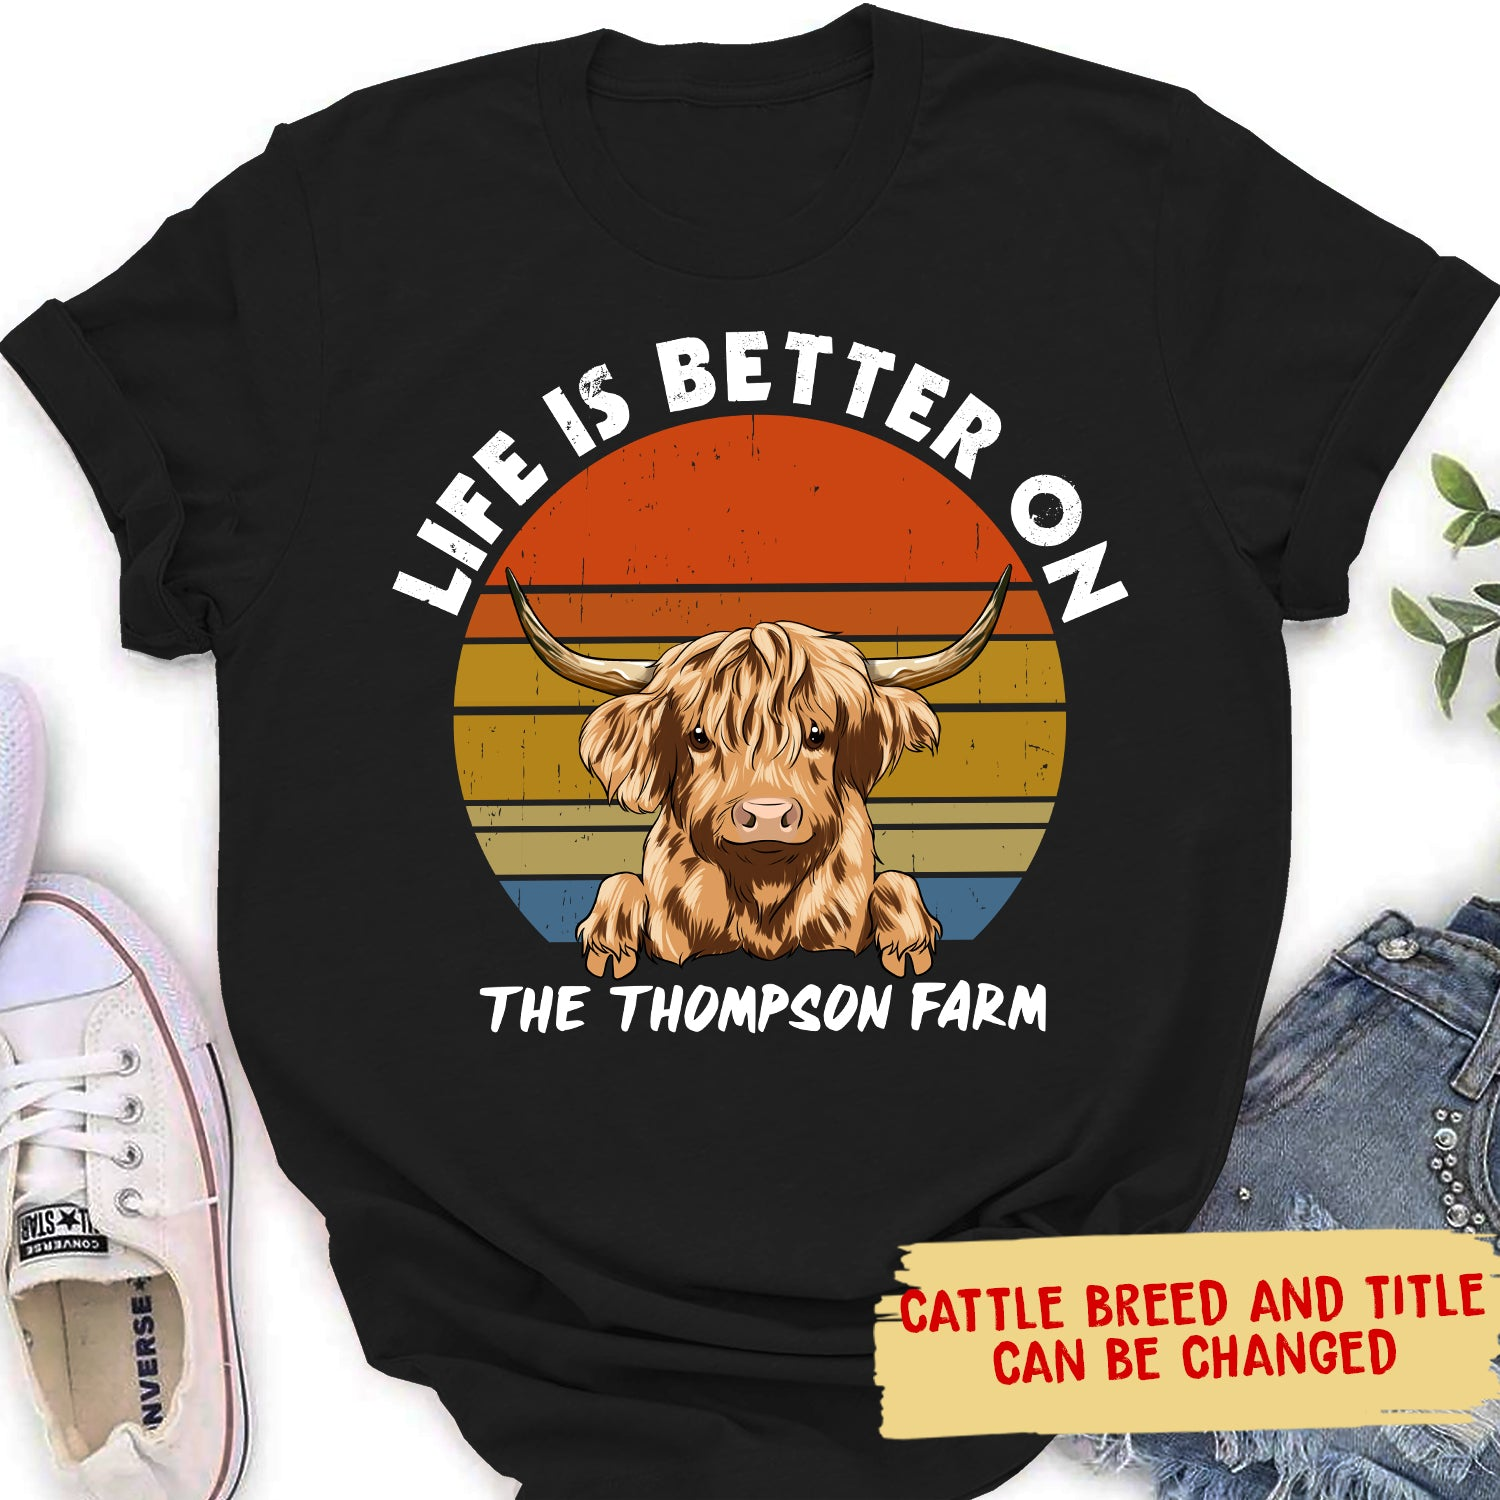 A Better Life - Personalized Custom Women T-Shirt